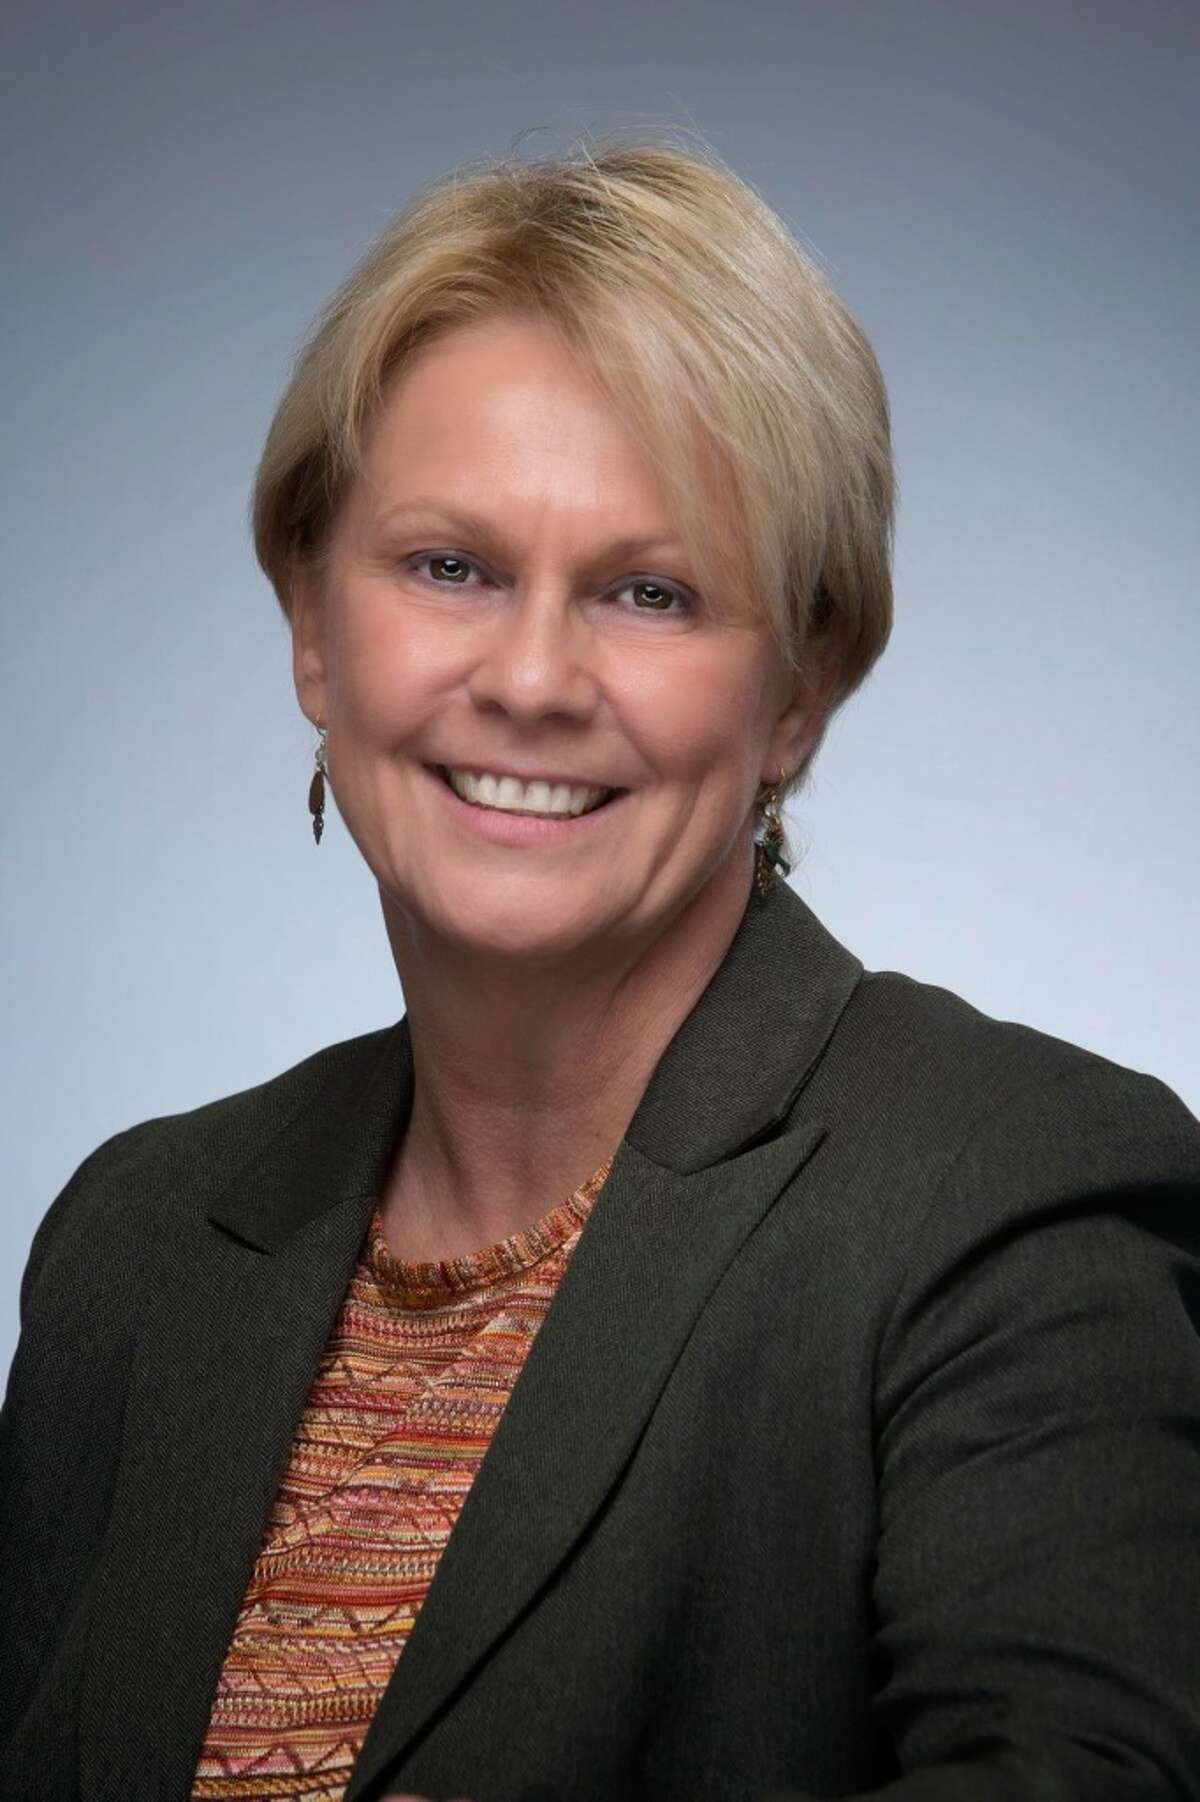 Houston-based Occidental Petroleum Corp. on May 5, 2015 named Vicki Hollub to succeed retiring President and CEO Stephen Chazen, making her the first female president of a major oil and gas firm. See the other faces behind Houston's biggest companies.